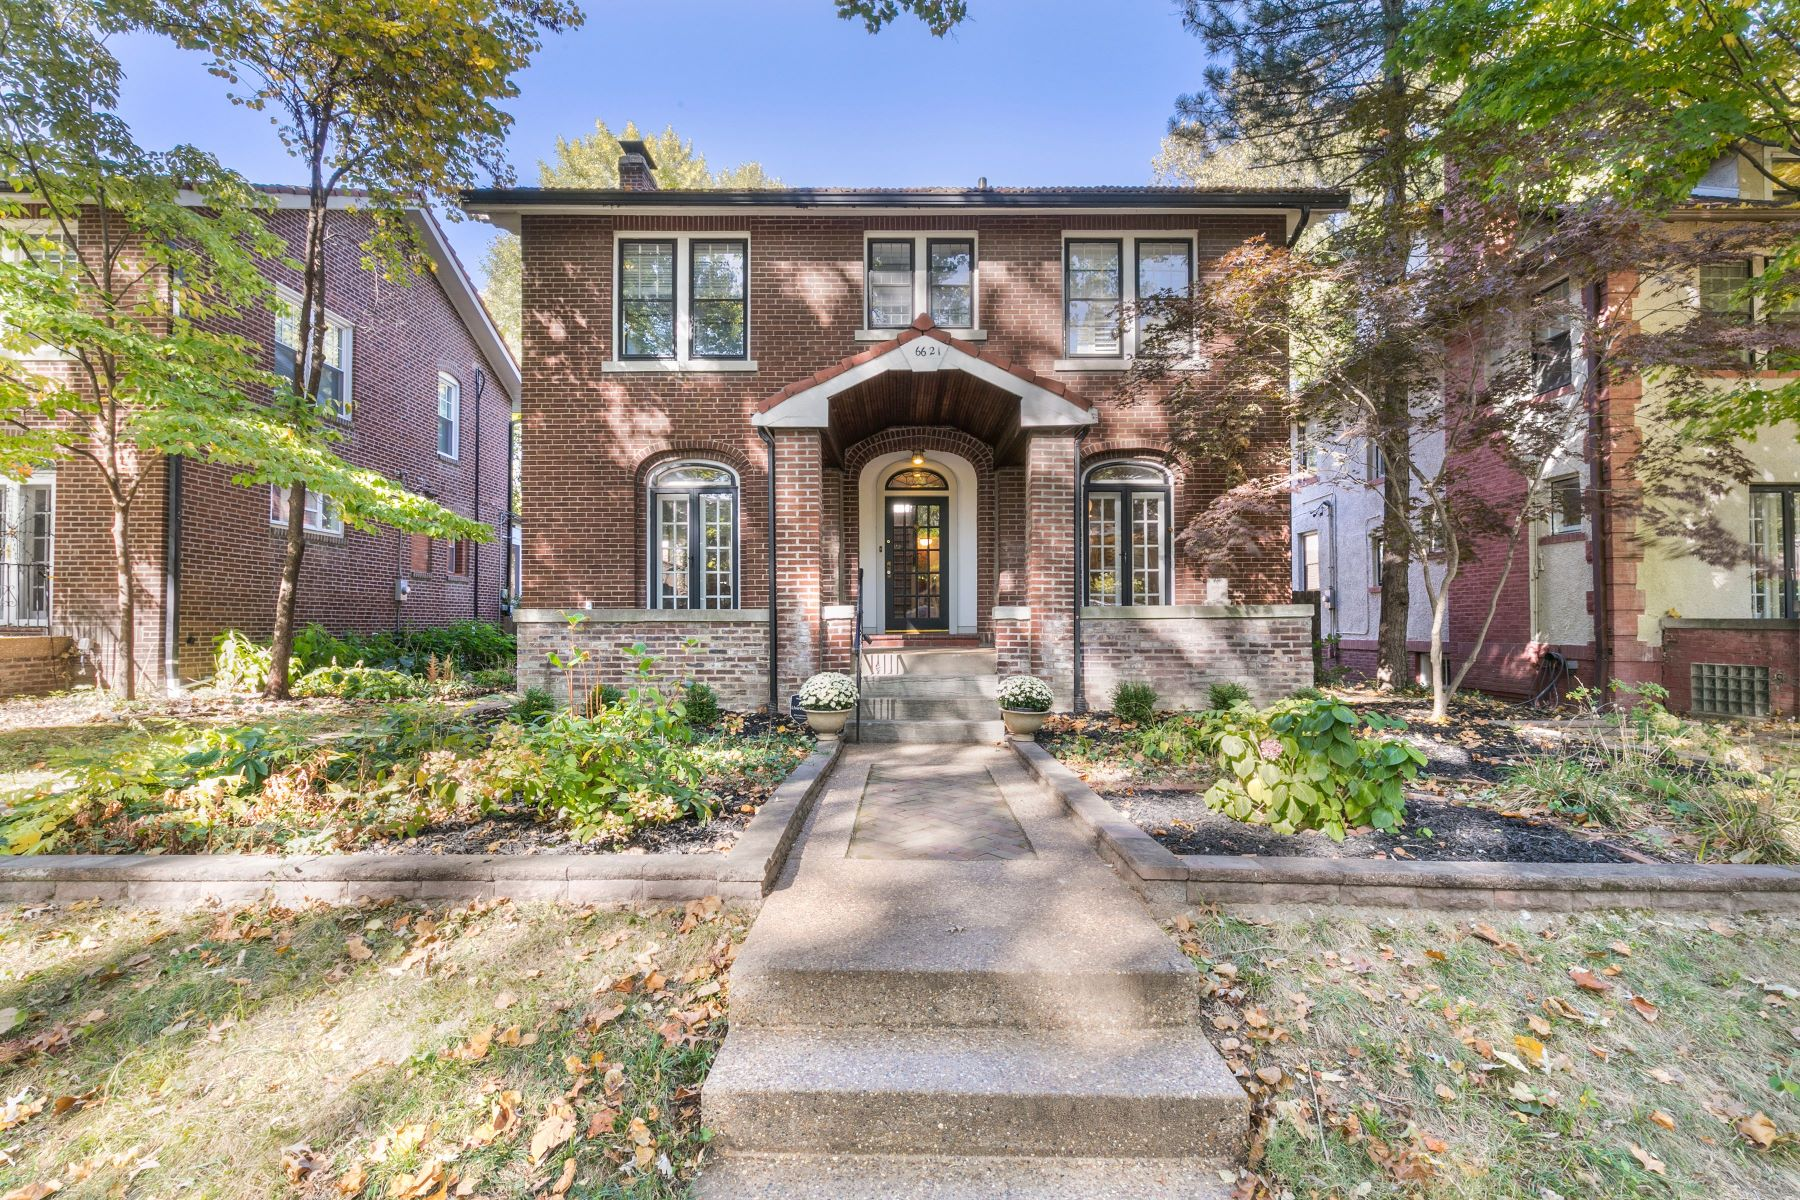 Single Family Homes for Sale at Old St. Louis Architecture With Today's Finest Amenities 6621 Pershing Avenue, University City, Missouri 63130 United States